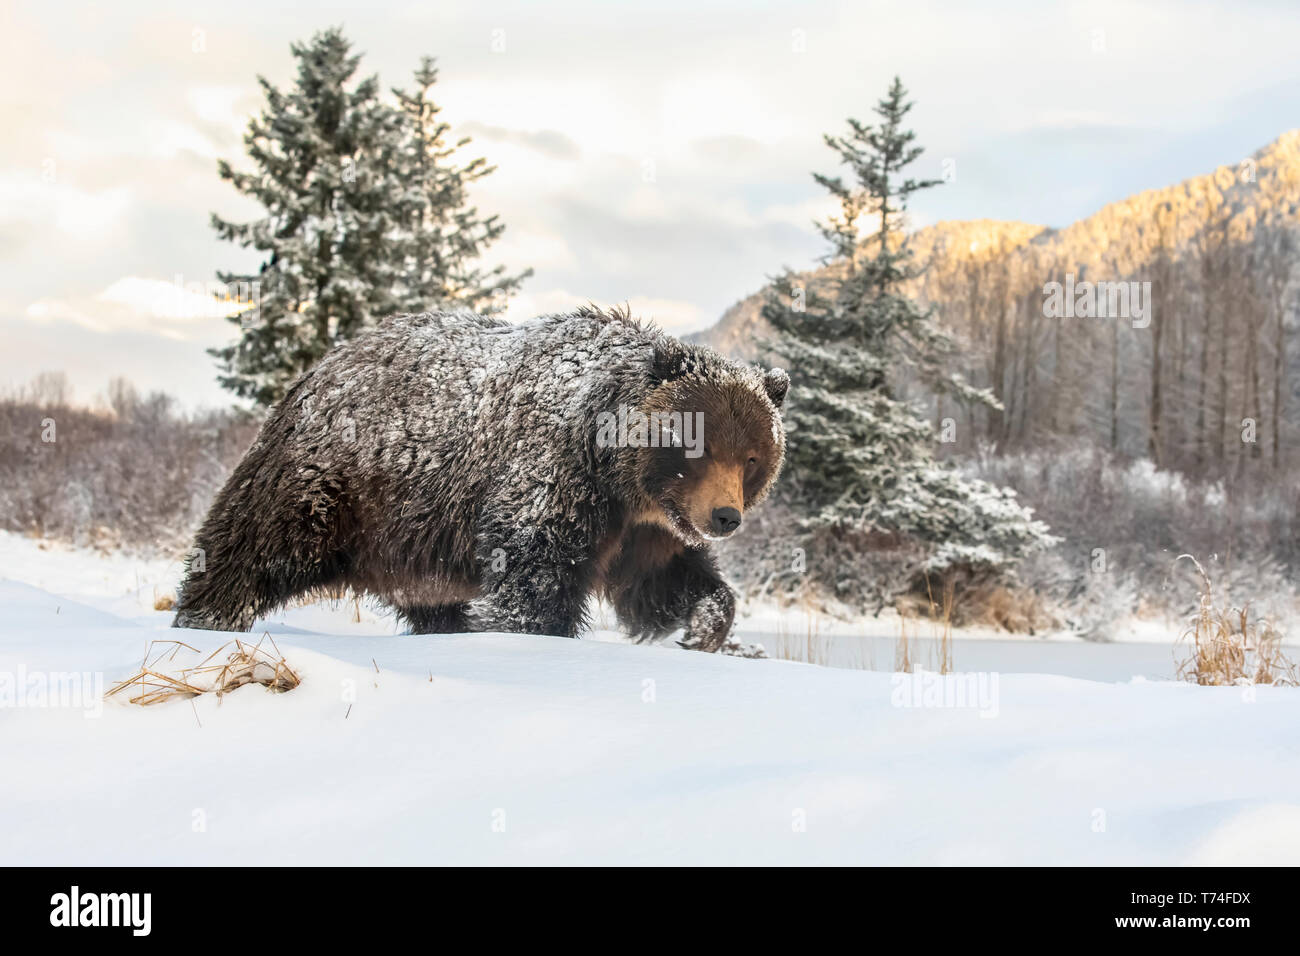 Grizzly bear (Ursus arctic sp.) walking in the snow, Alaska Wildlife Conservation Center, South-central Alaska Stock Photo